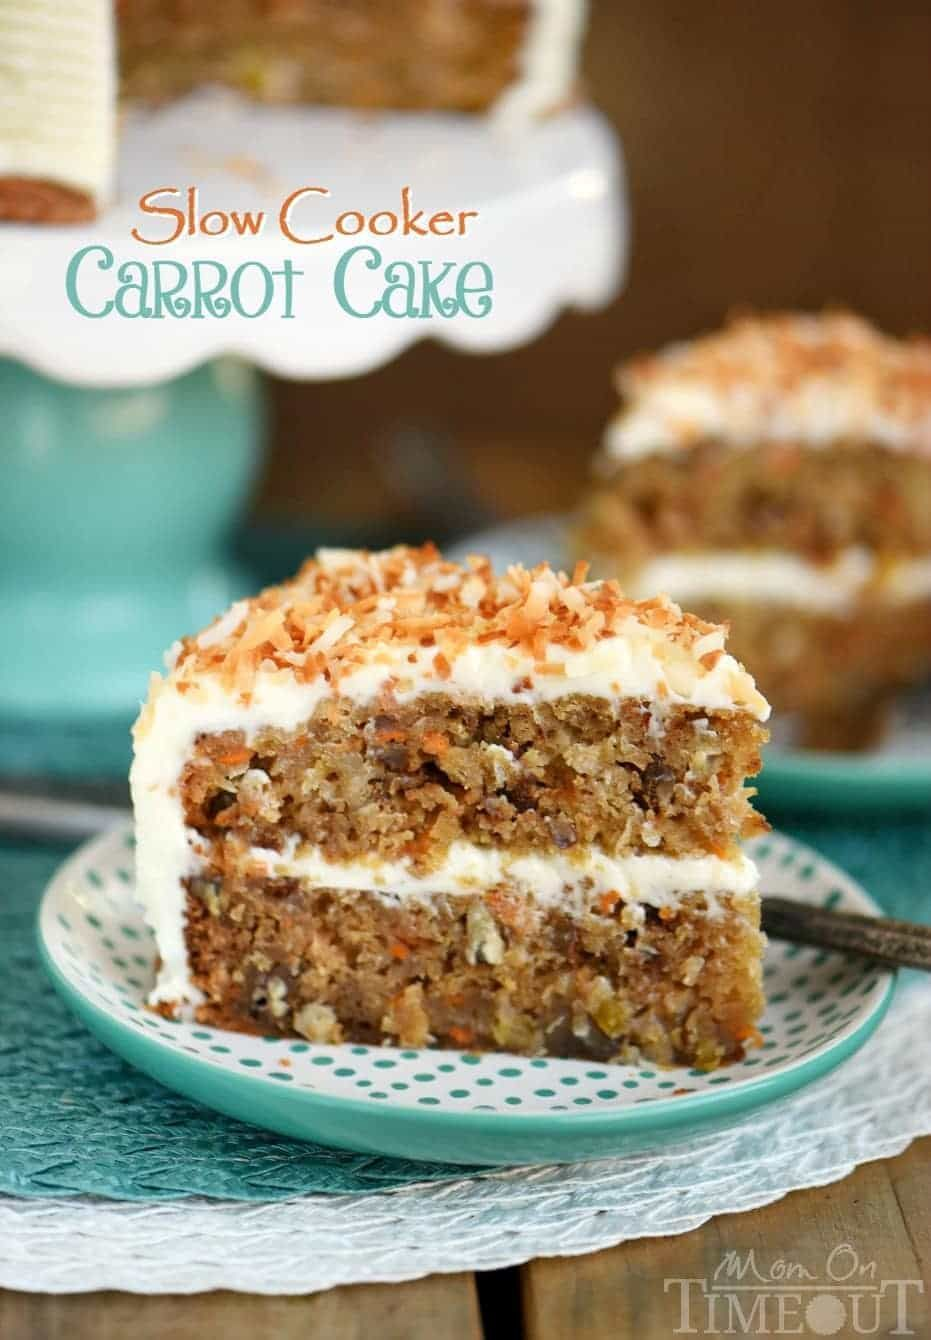 Slow Cooker Carrot Cake With Cream Cheese Frosting Is Made Without